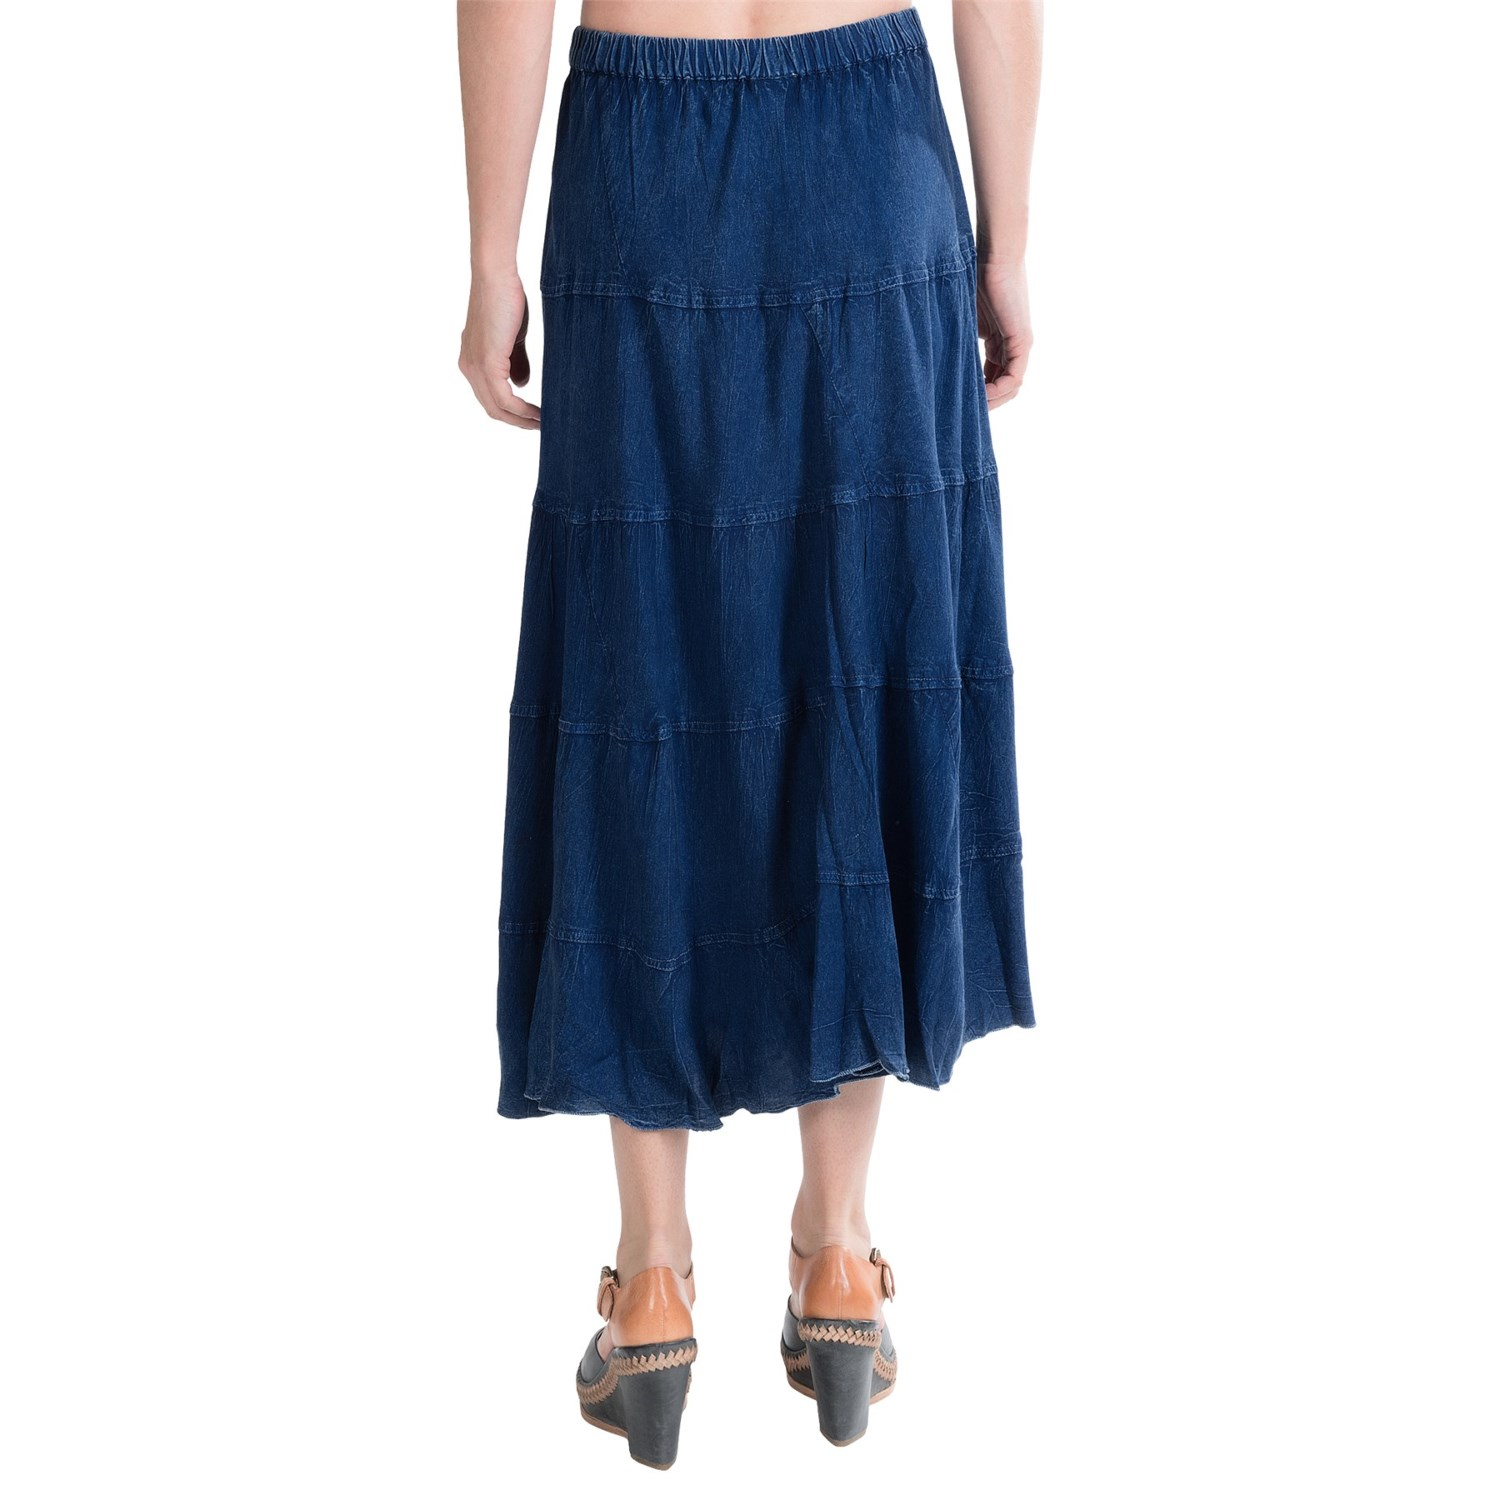 studio west denim 5 tiered rodeo skirt for 8694f